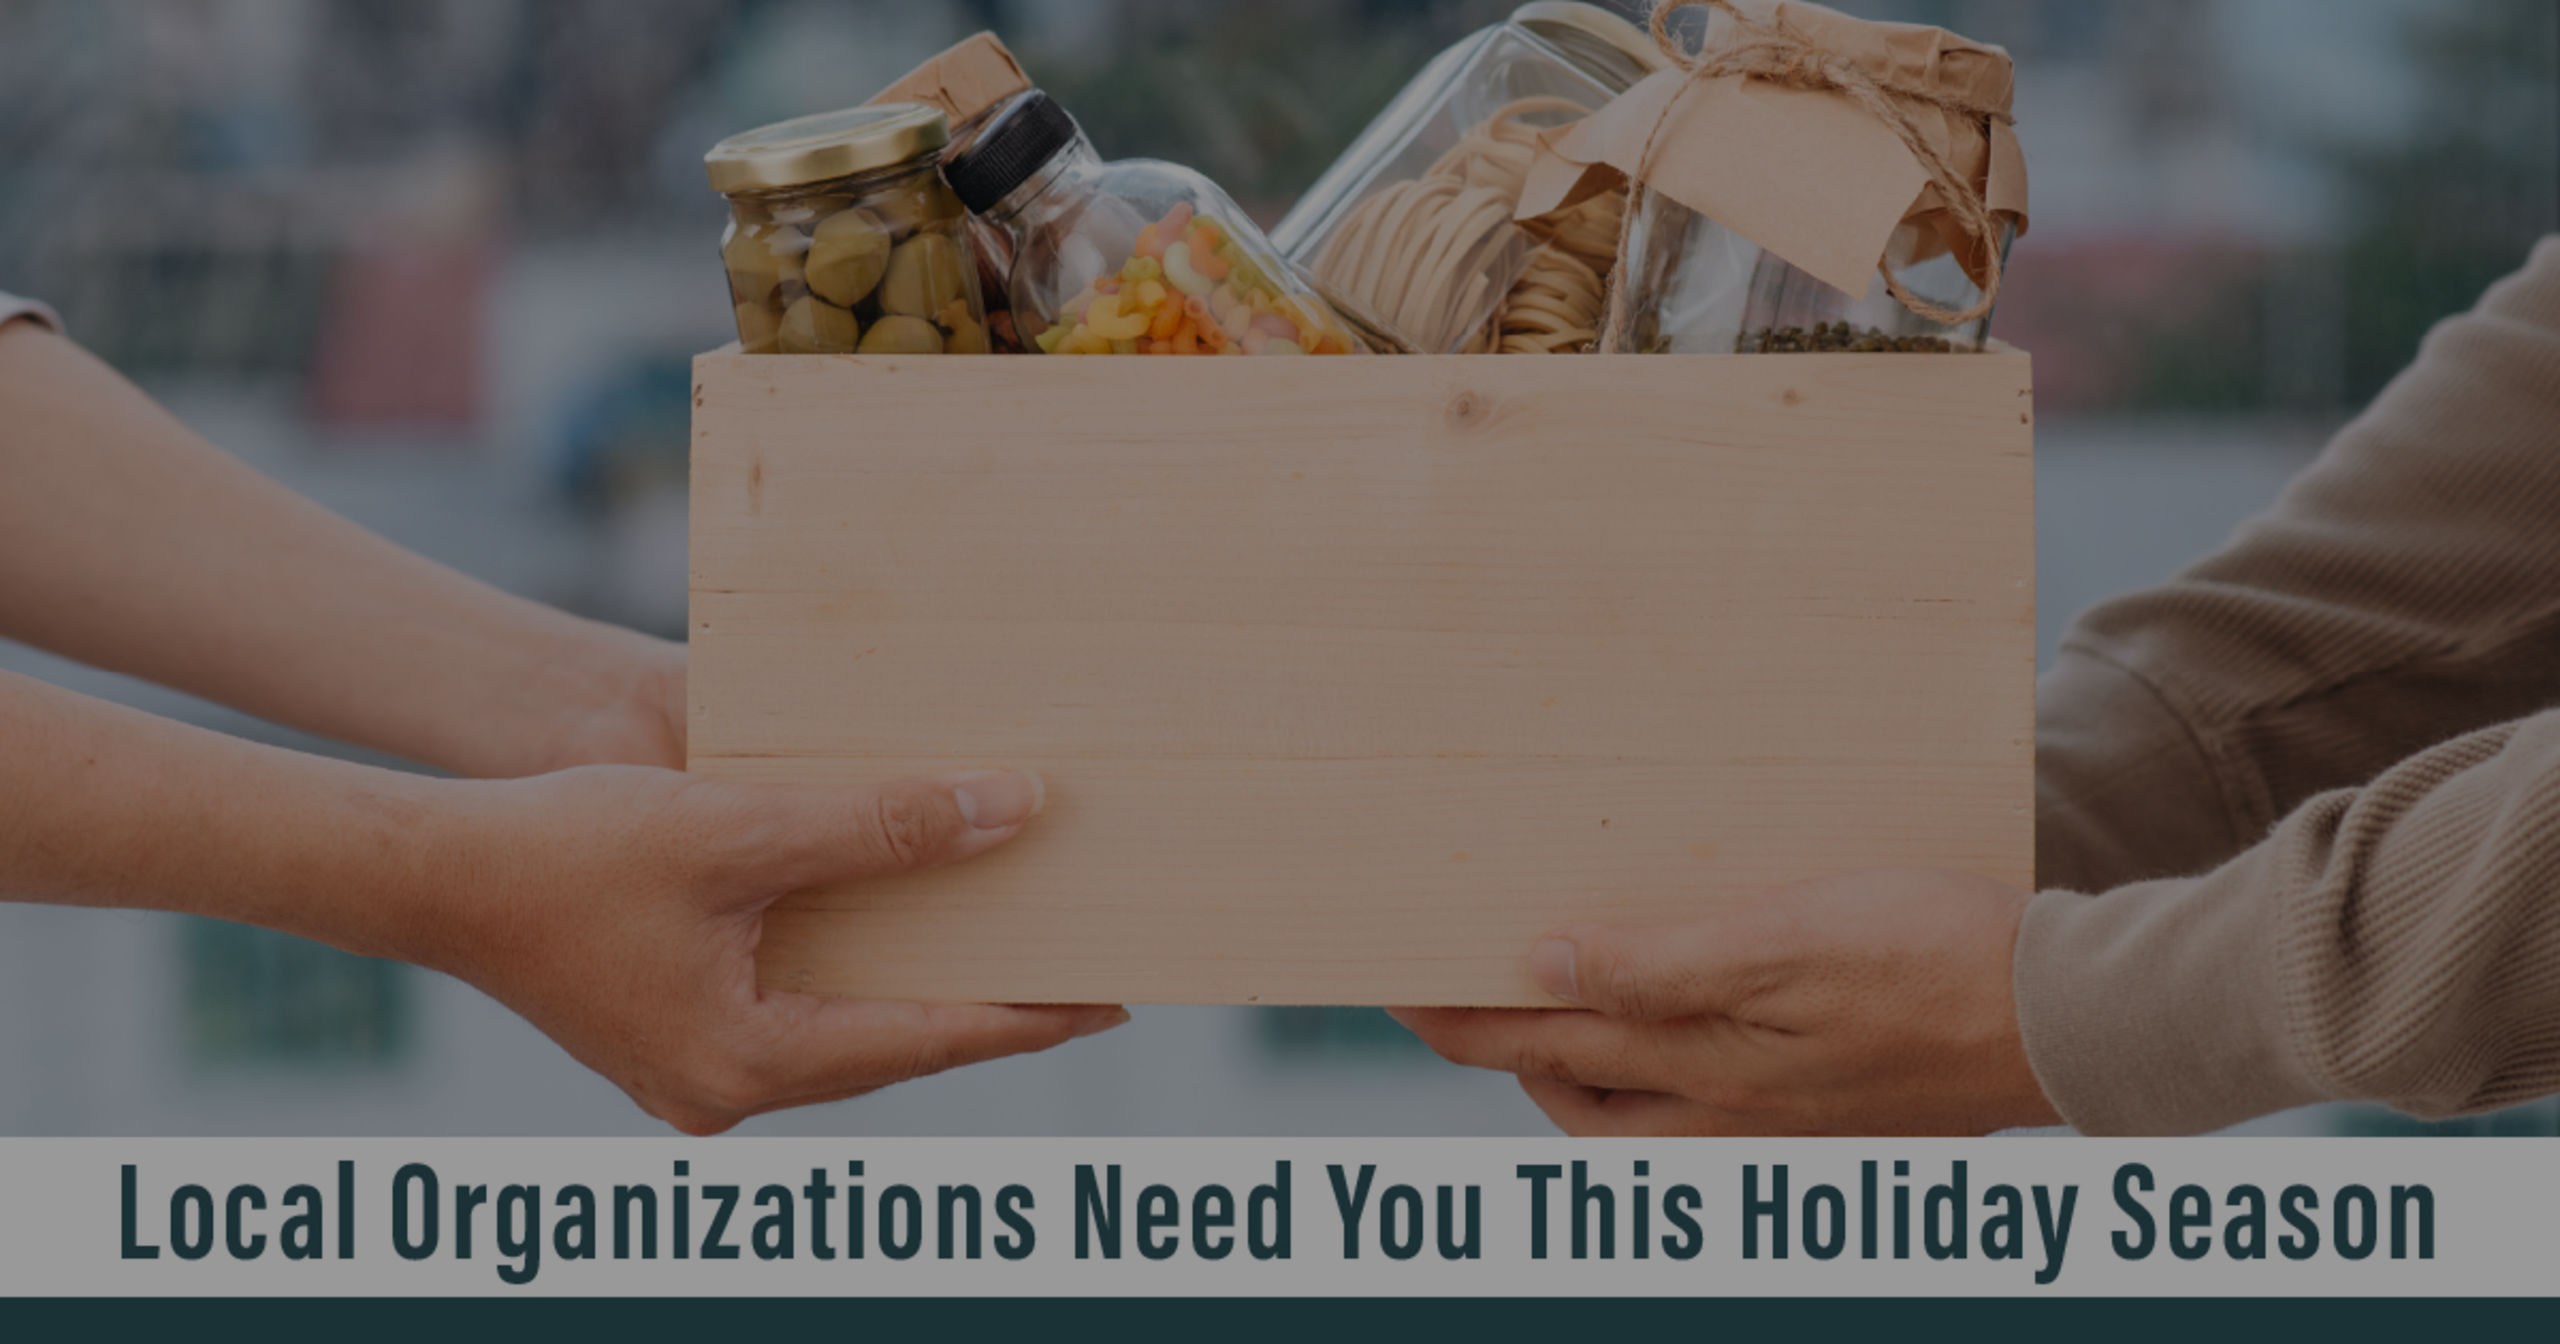 10 ways to give back this holiday season